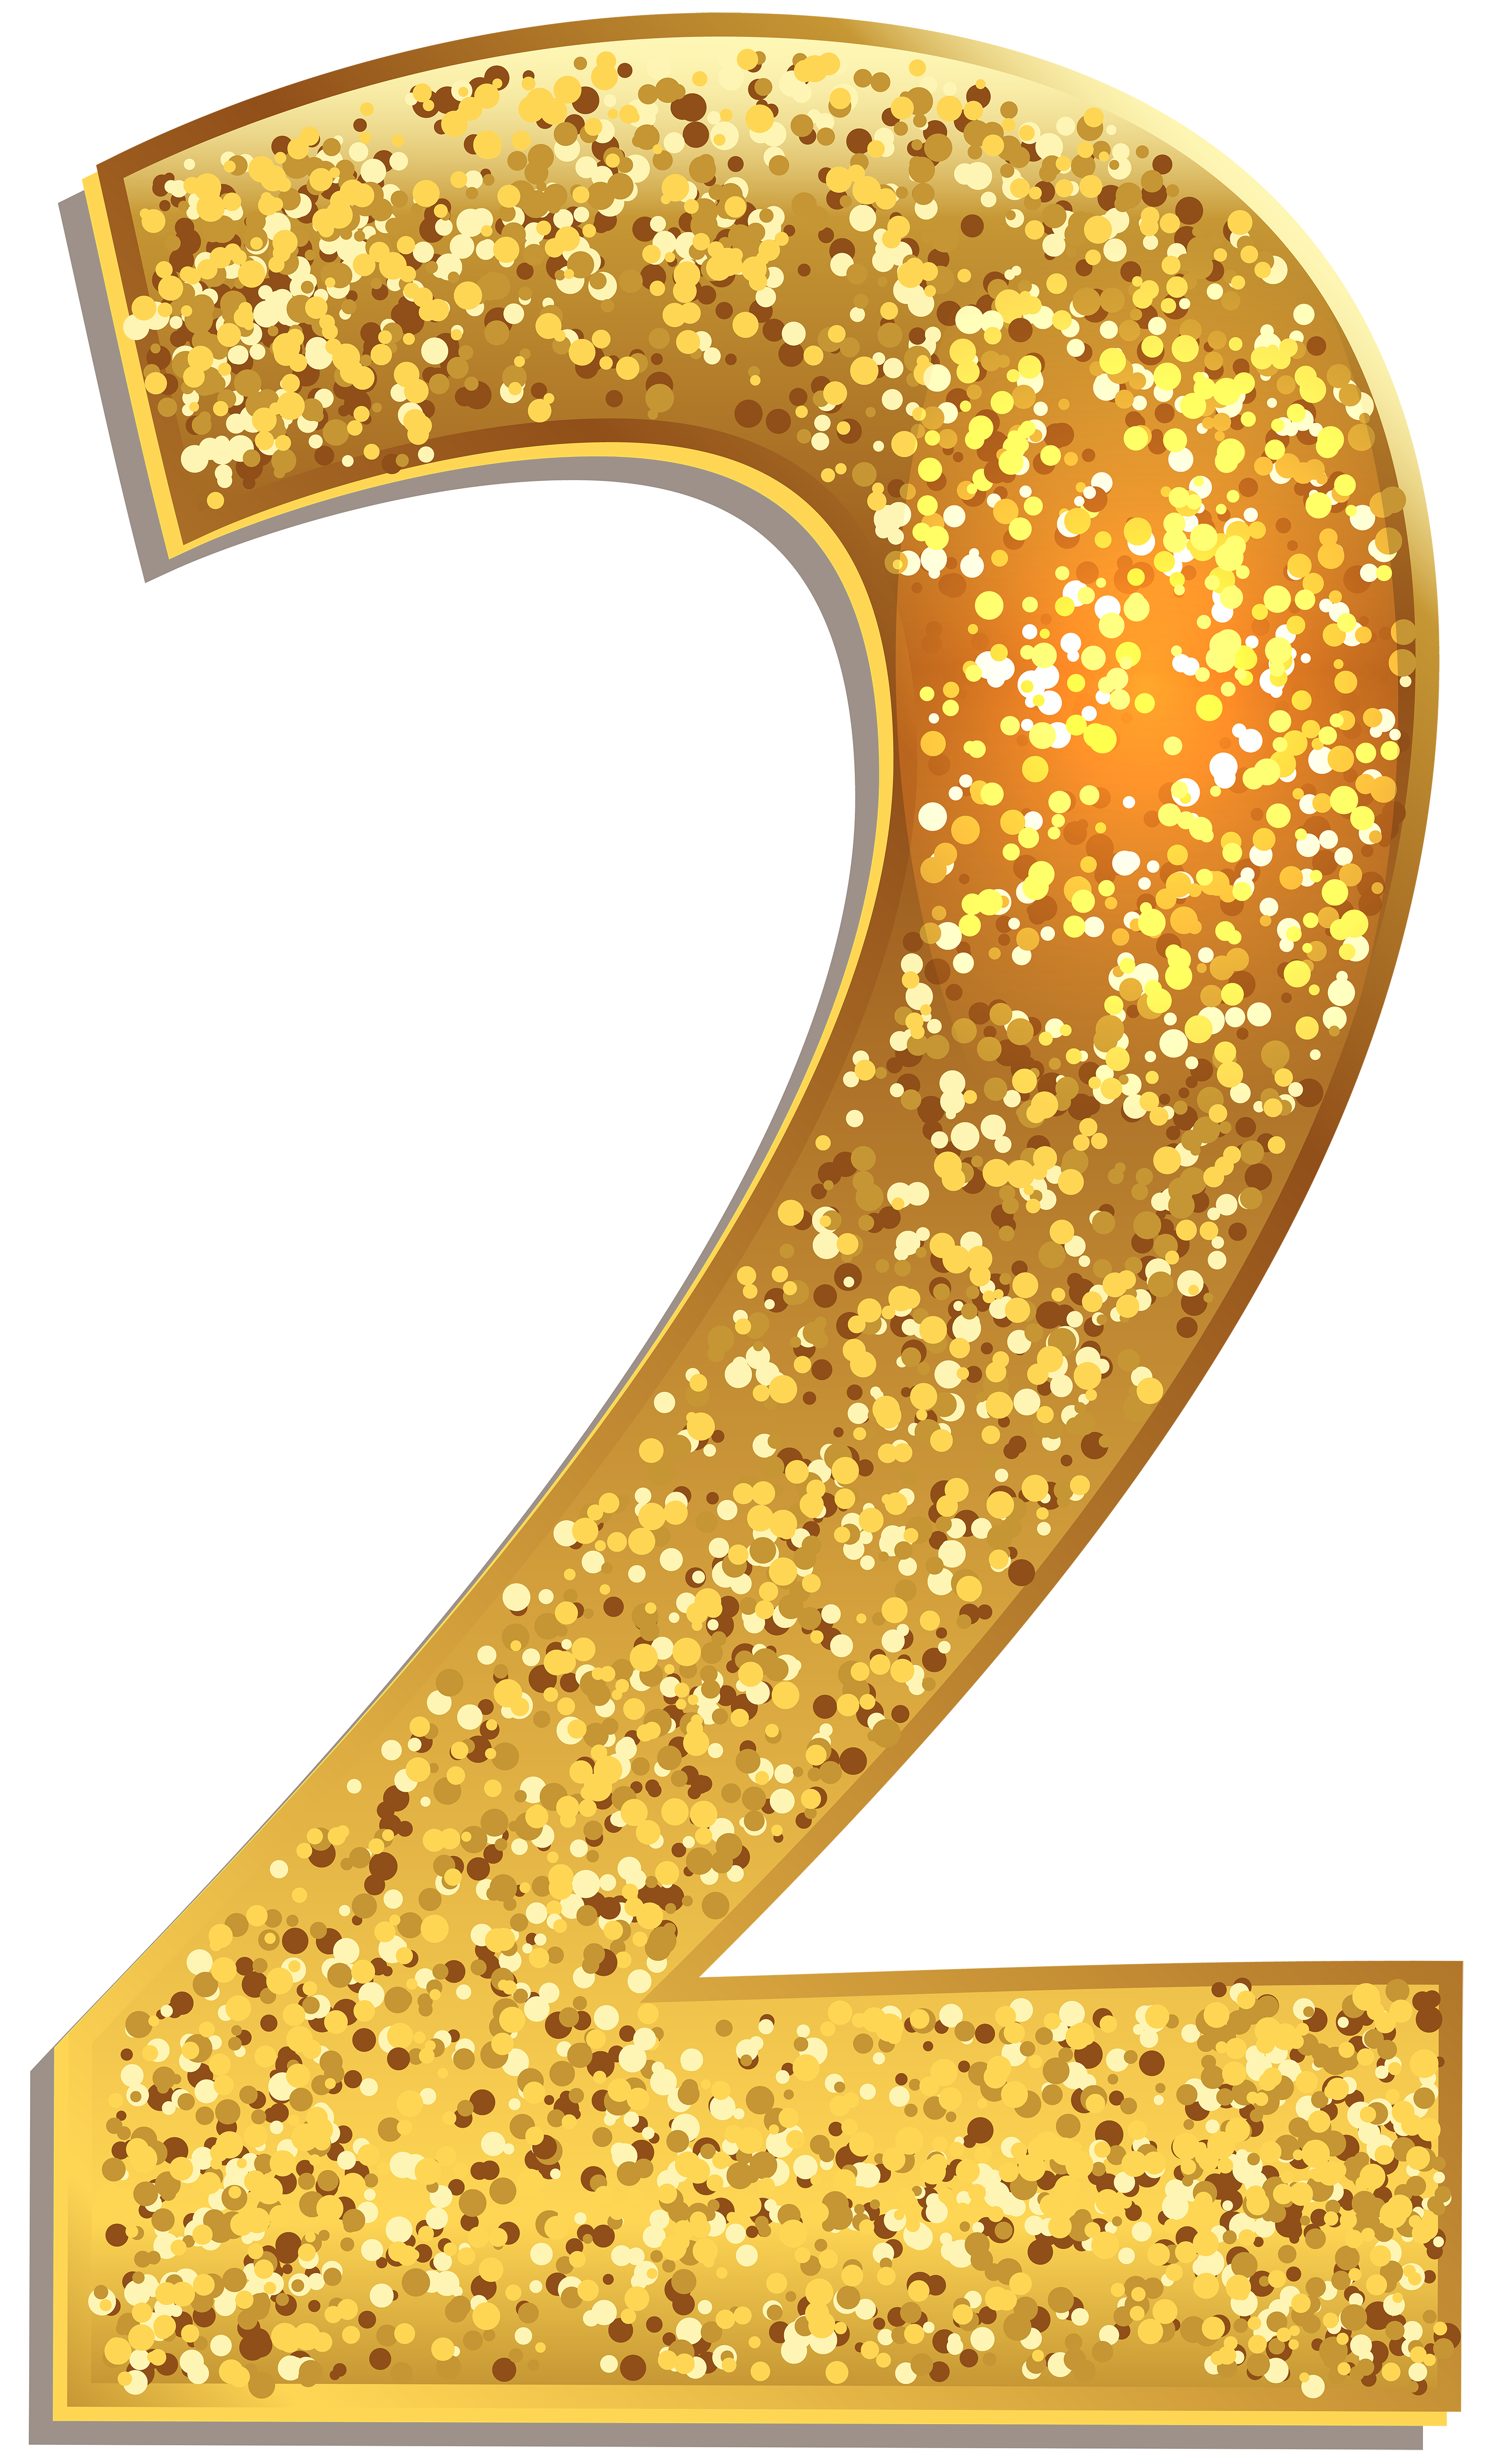 Glitter clipart gold bubble. Number two shining png